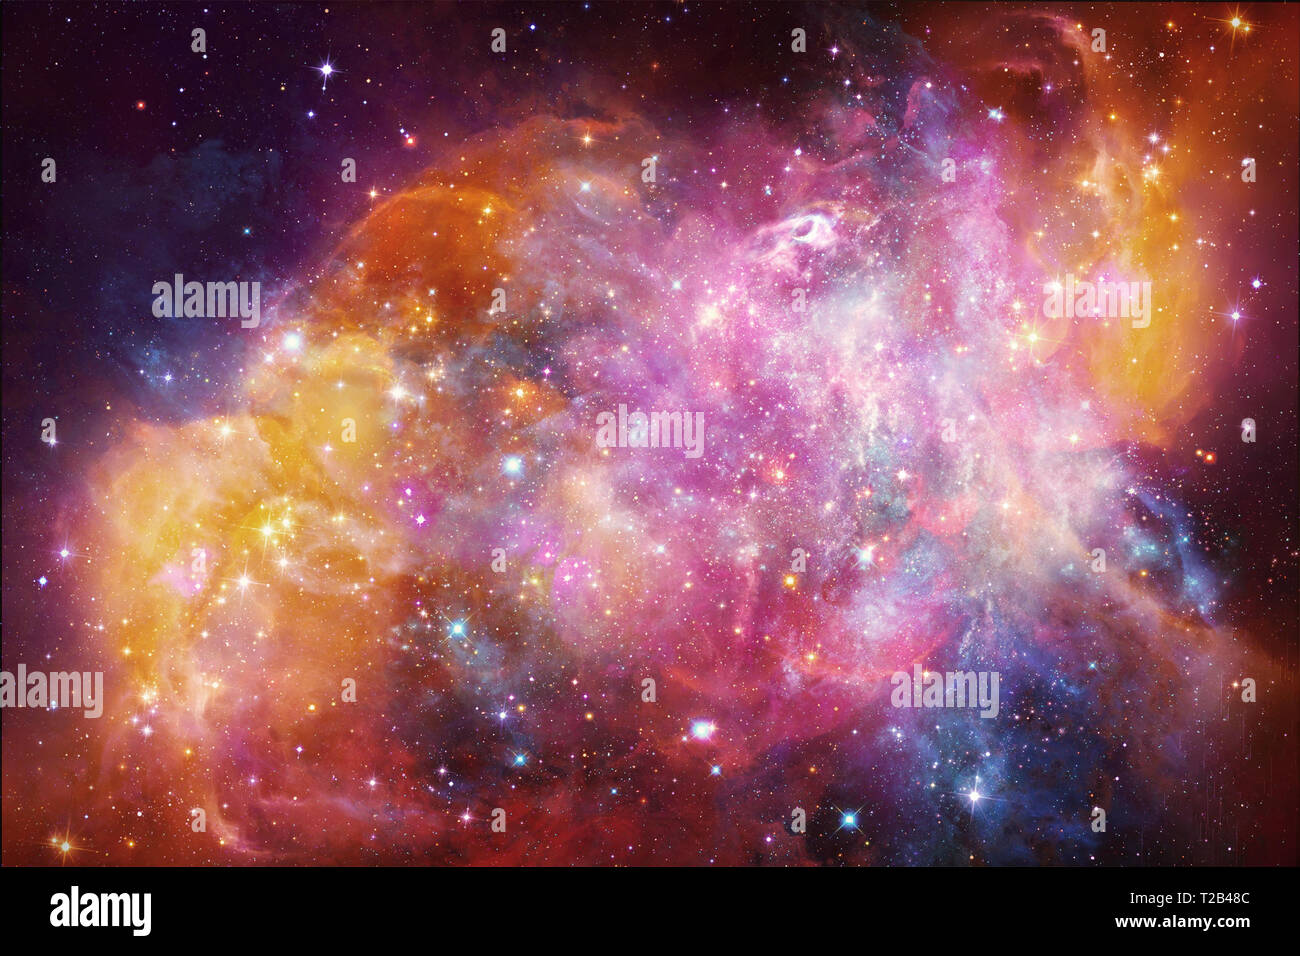 Abstract Beautiful Multicolored Galaxy Artwork In Outer Space